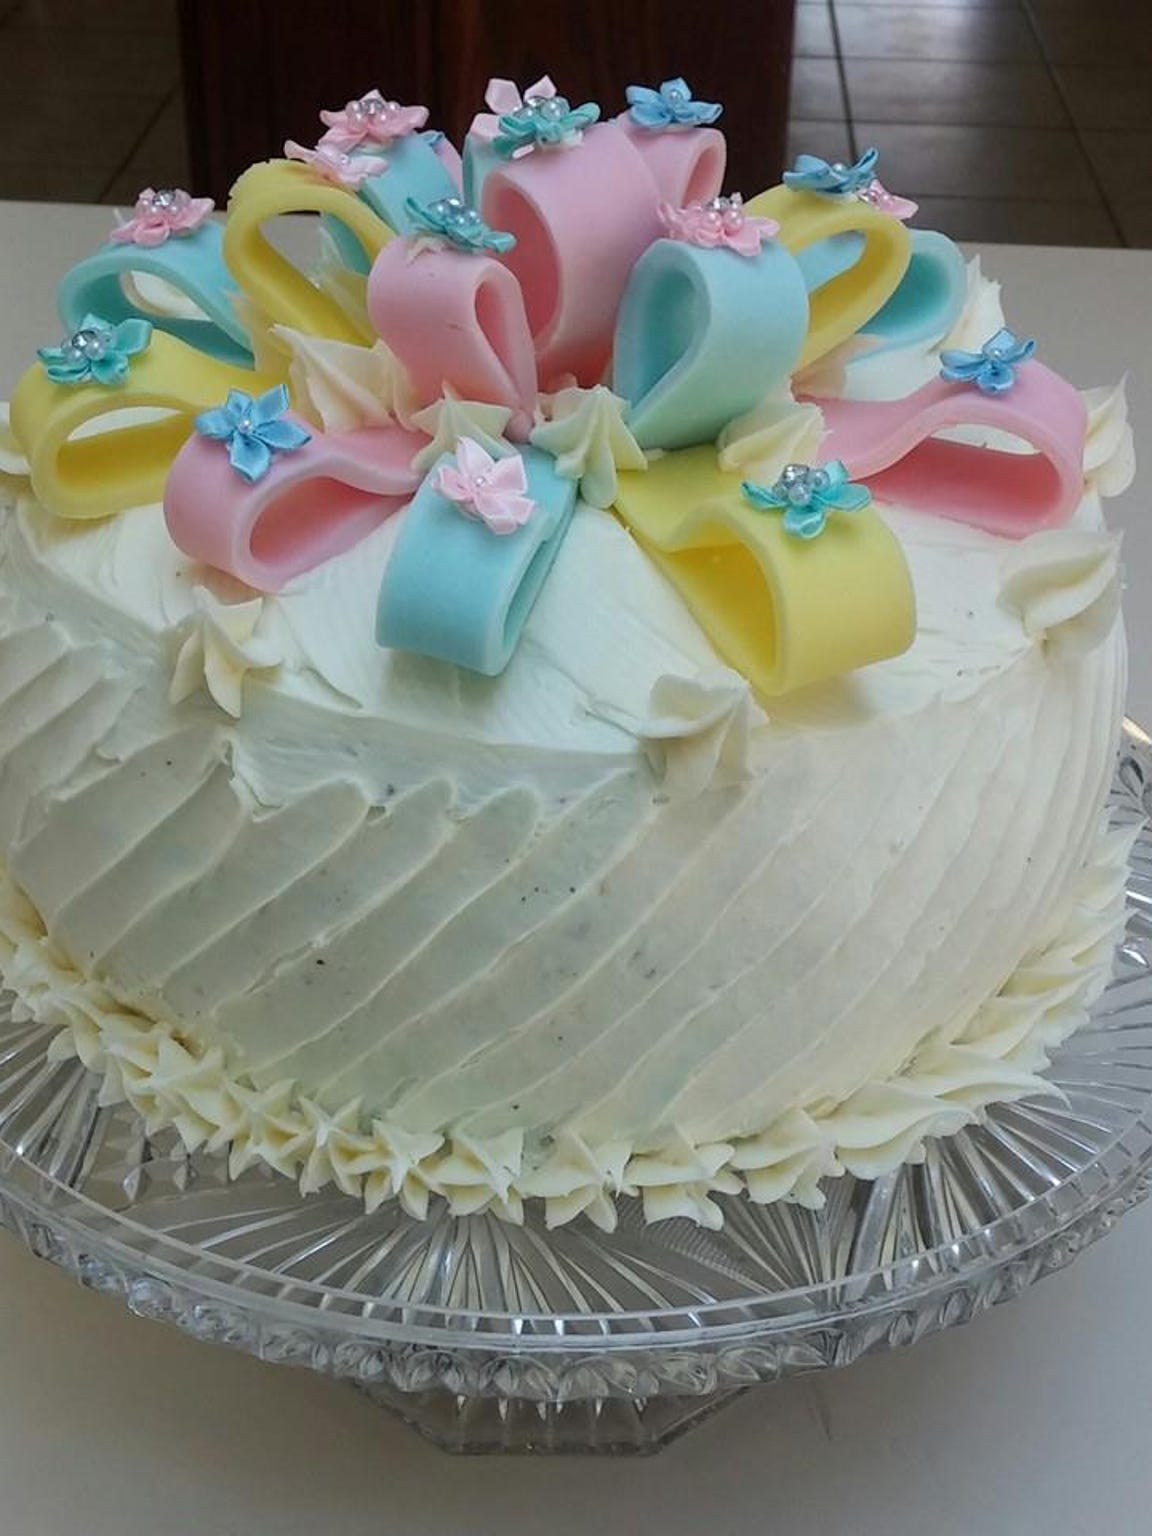 Stephanie baked this cake for her baby's gender-reveal